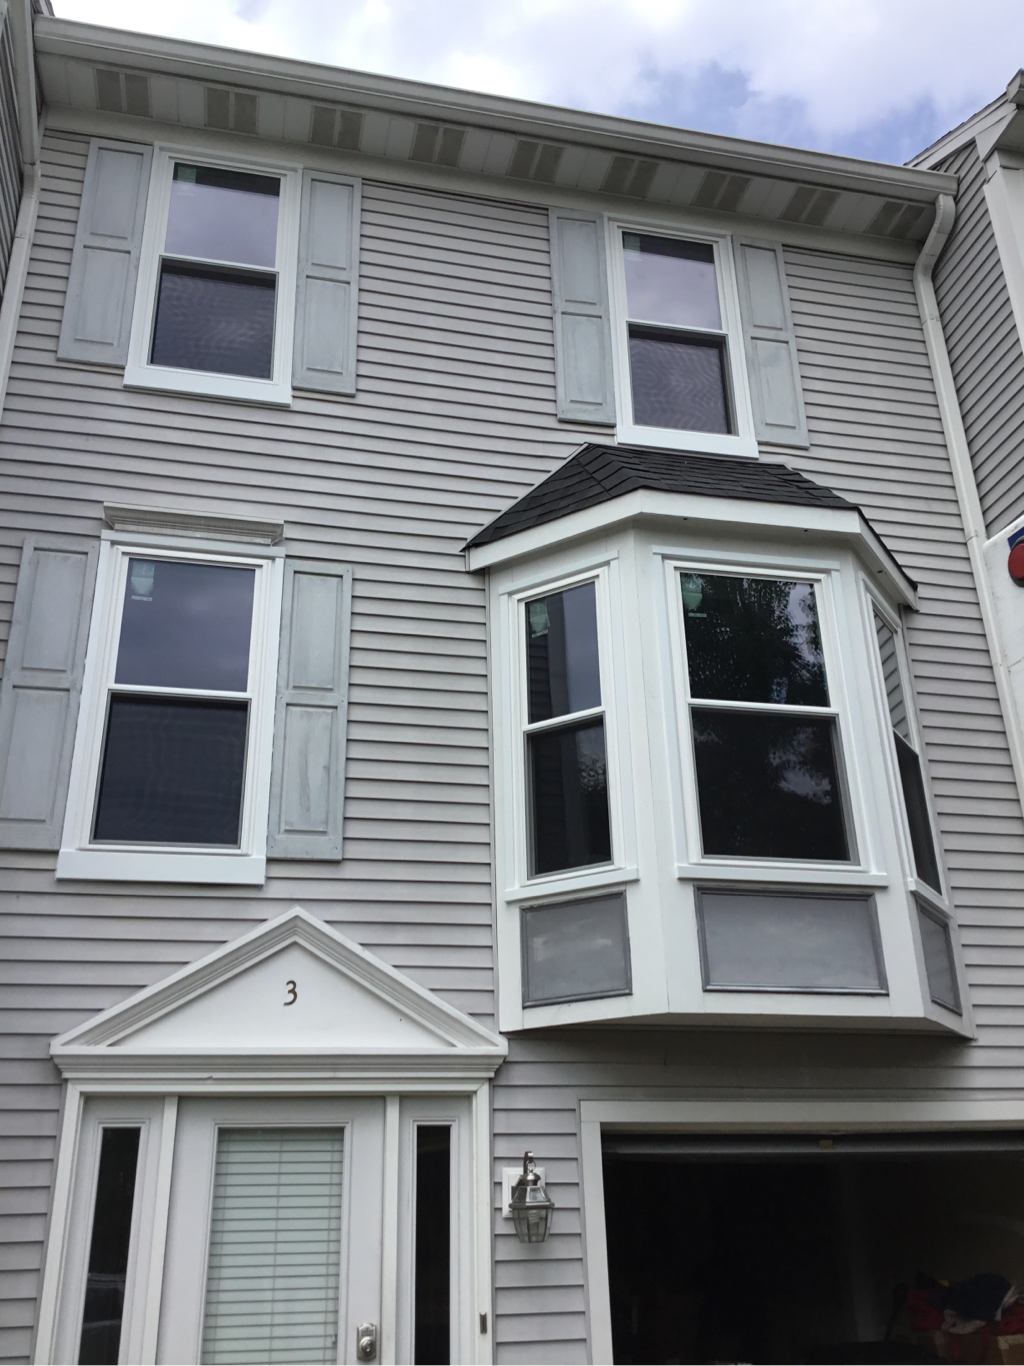 Quantum double hung windows after